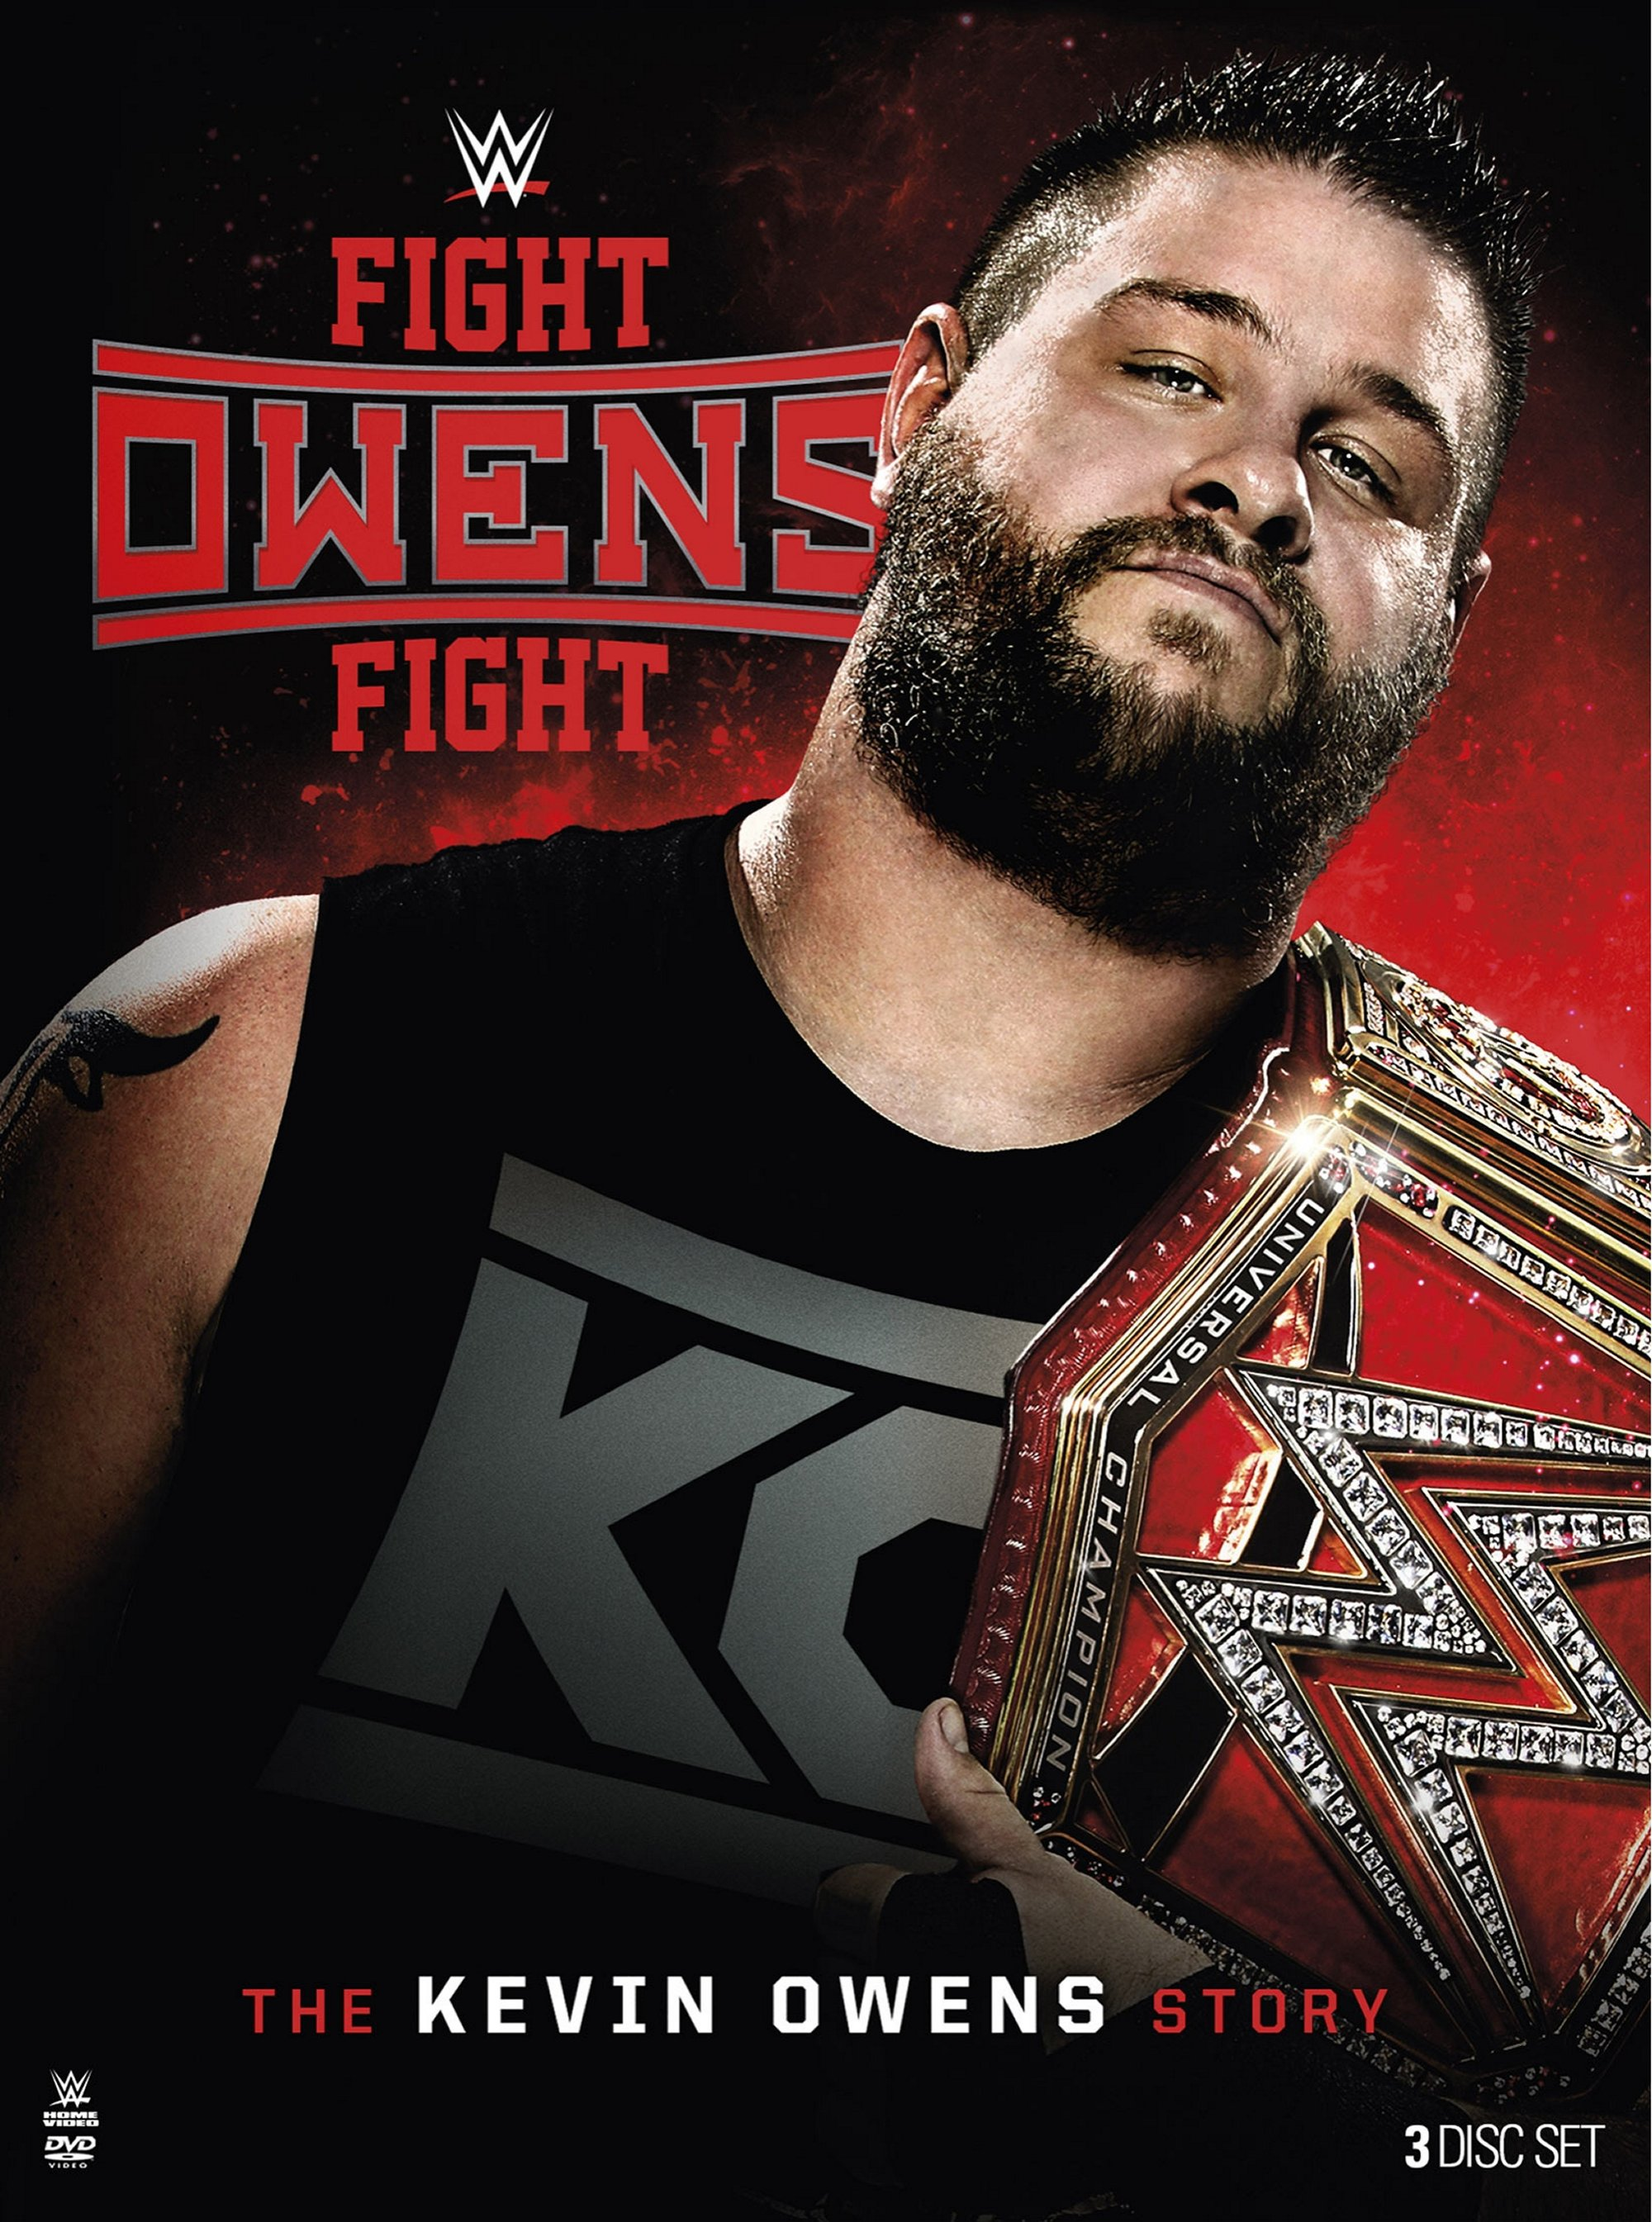 WWE: Fight Owens Fight: The Kevin Owens Story by